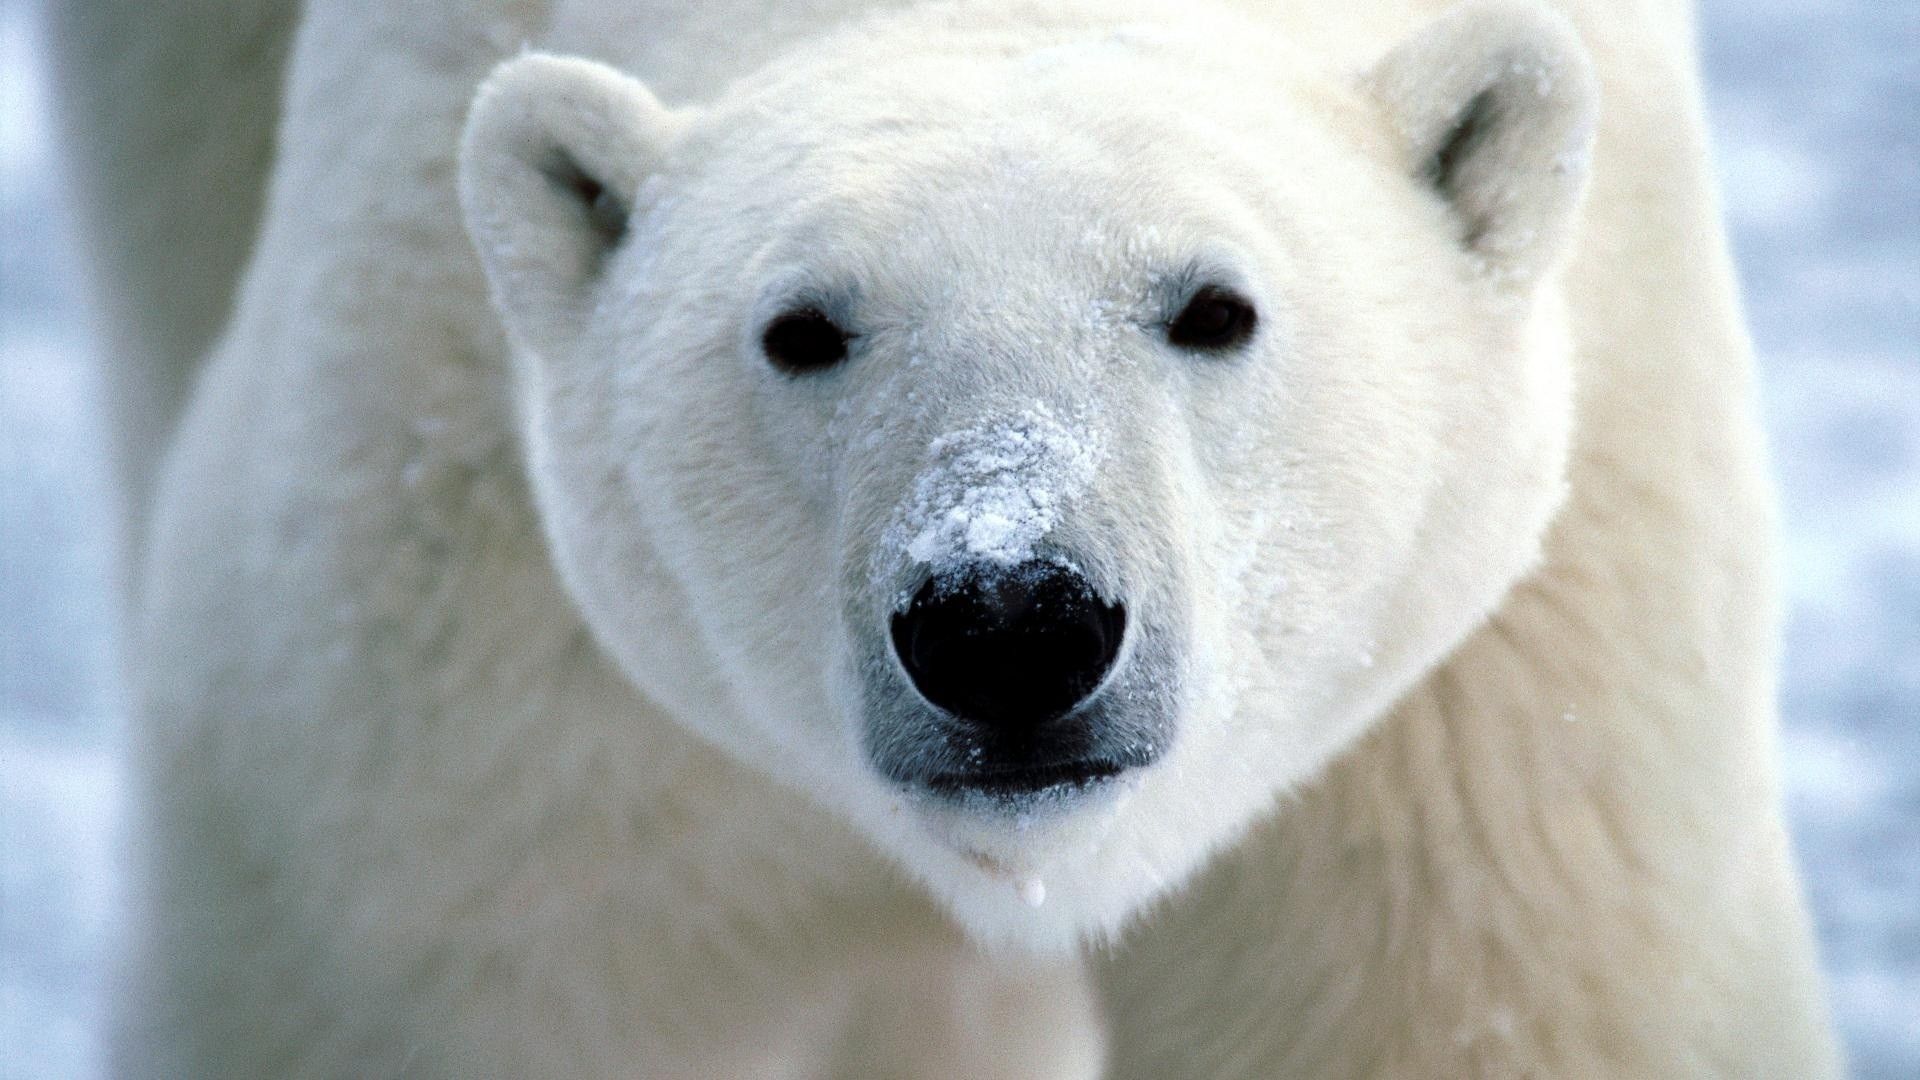 Animals-landscapes-nature-polar-bears-snow-1920x1080-landscapes-nature-polar-bears-snow-via-wallpaper-wp3602506